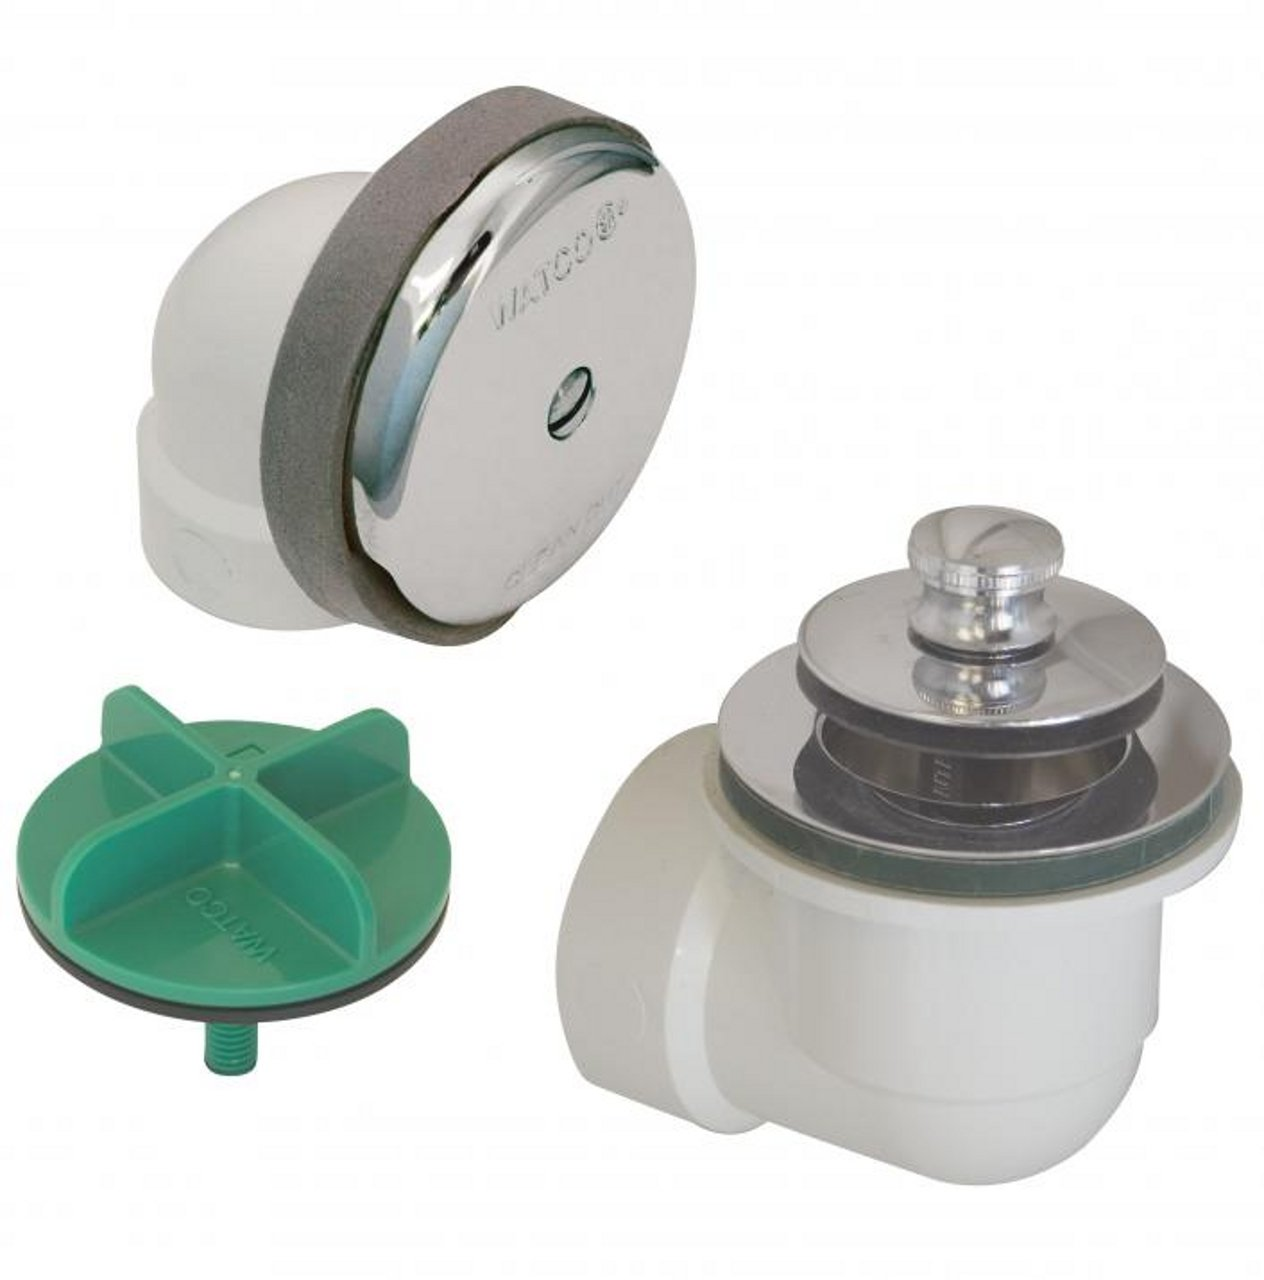 Watco Manufacturing 901-LT-PVC-BZ 1.5-Inch Schedule 40 PVC Piping Innovator Lift and Turn Bath Waste Half Kit, Oil Rubbed Bronze